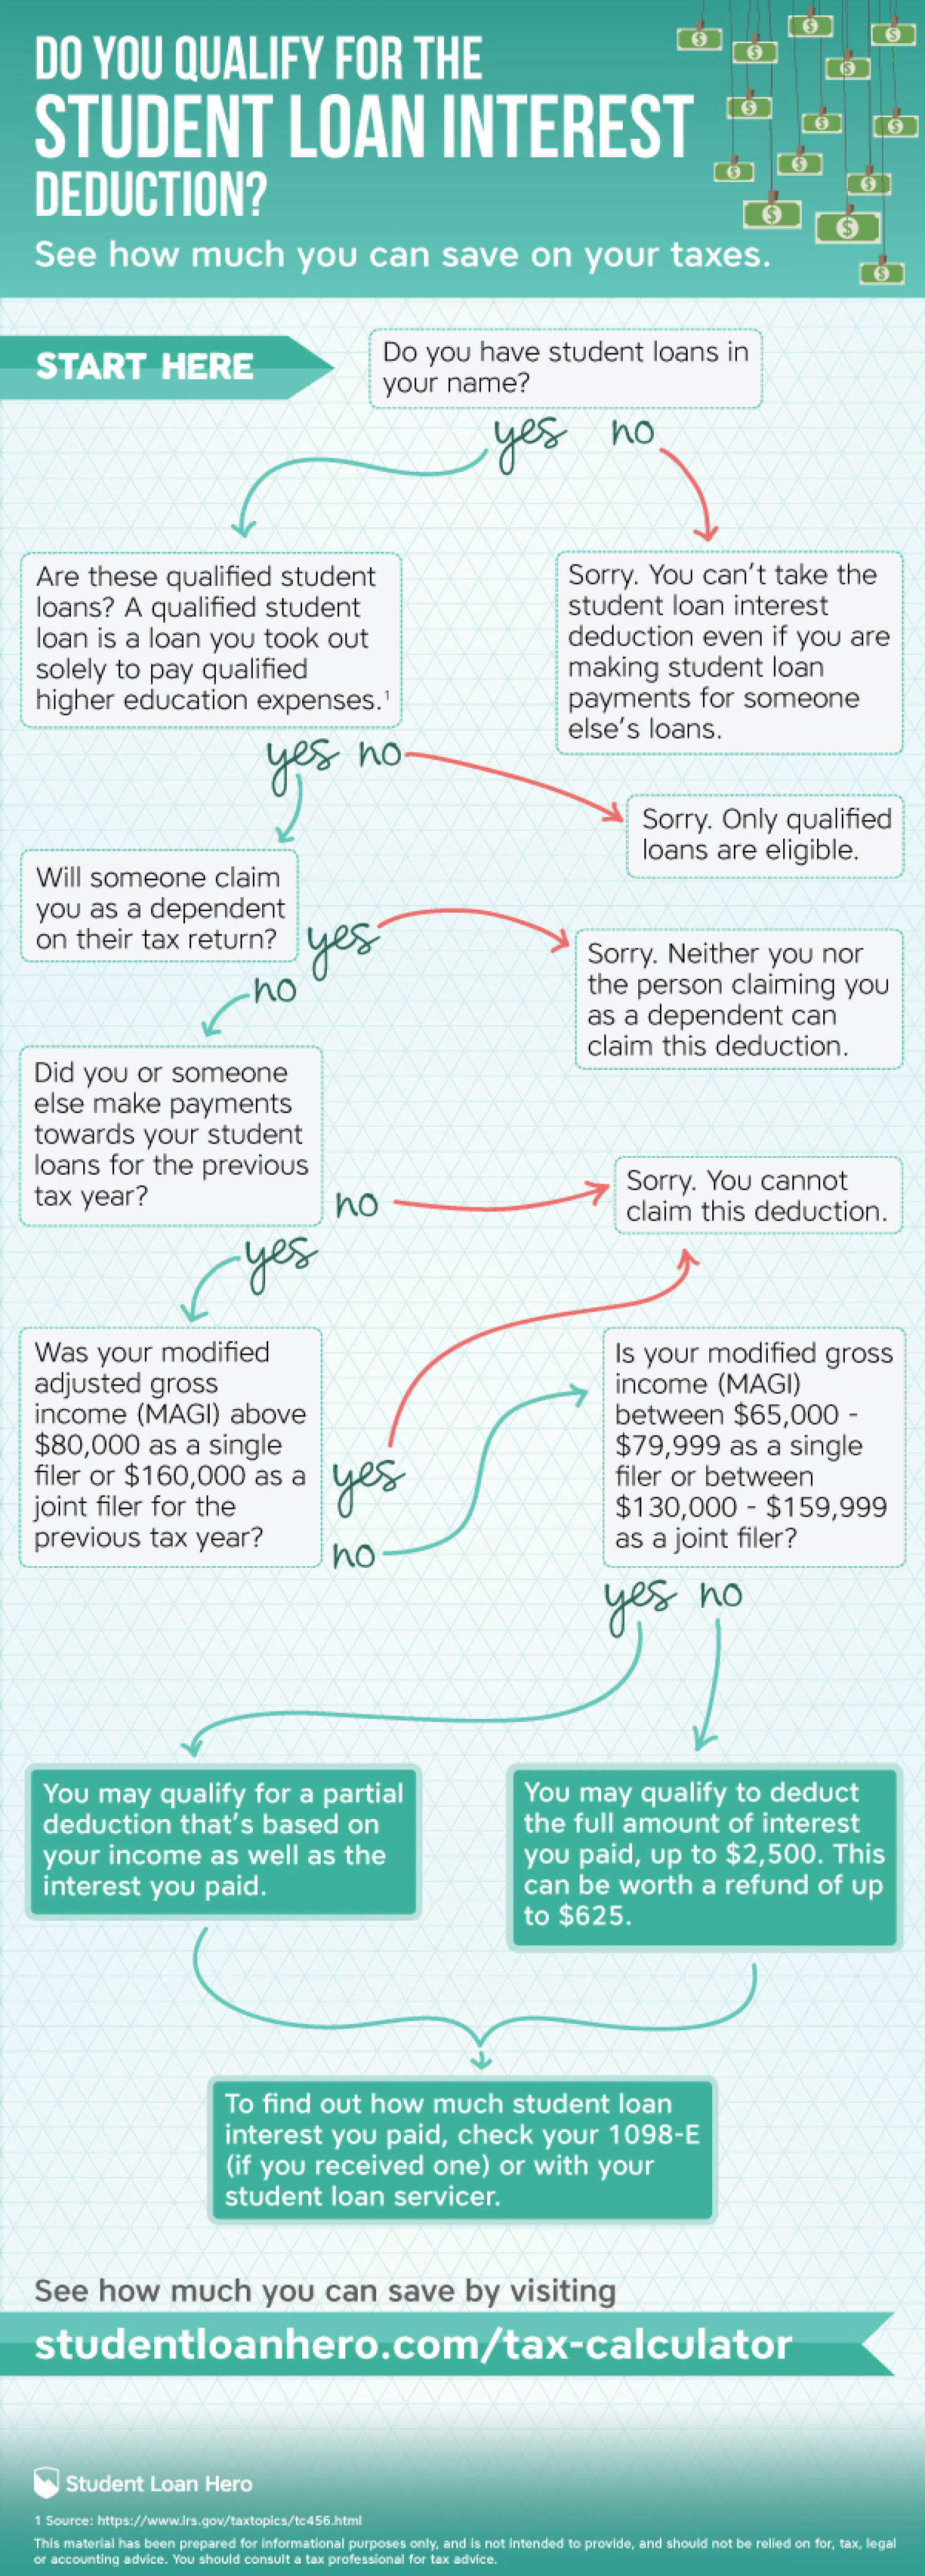 Do You Qualify For The Student Loan Interest Deduction? Infographic